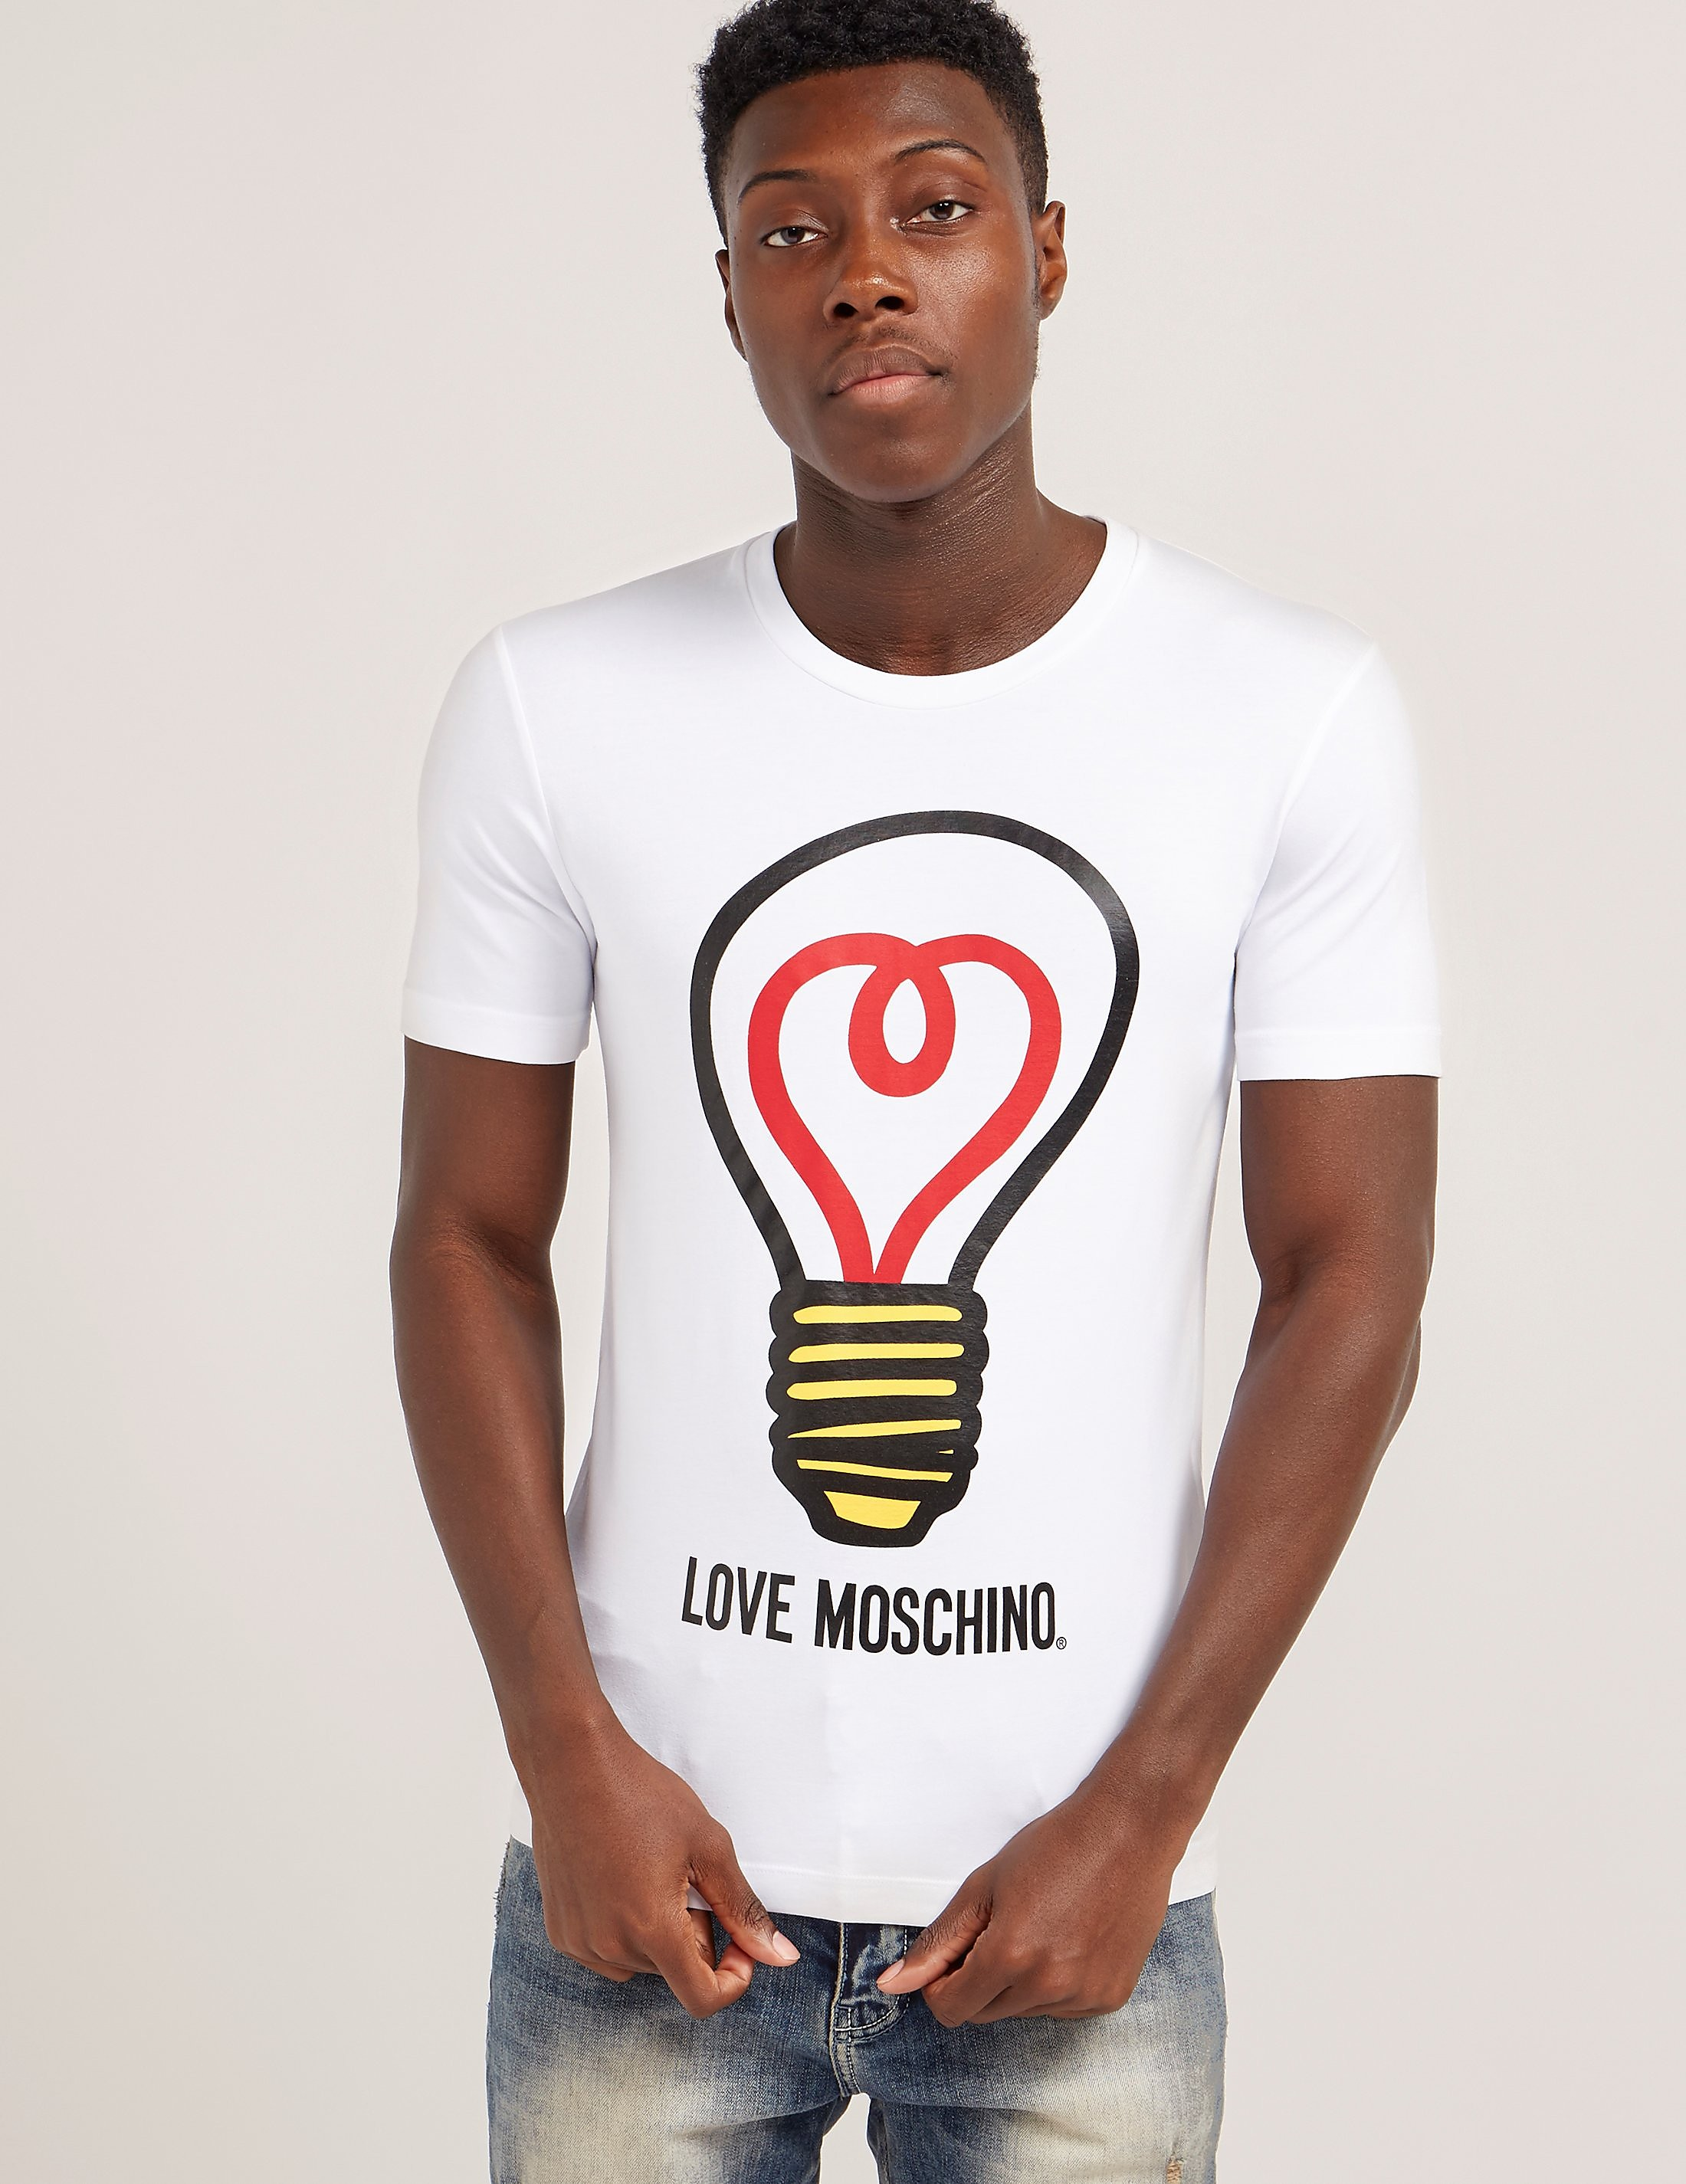 Love Moschino Light Bulb Print Short Sleeve T-Shirt